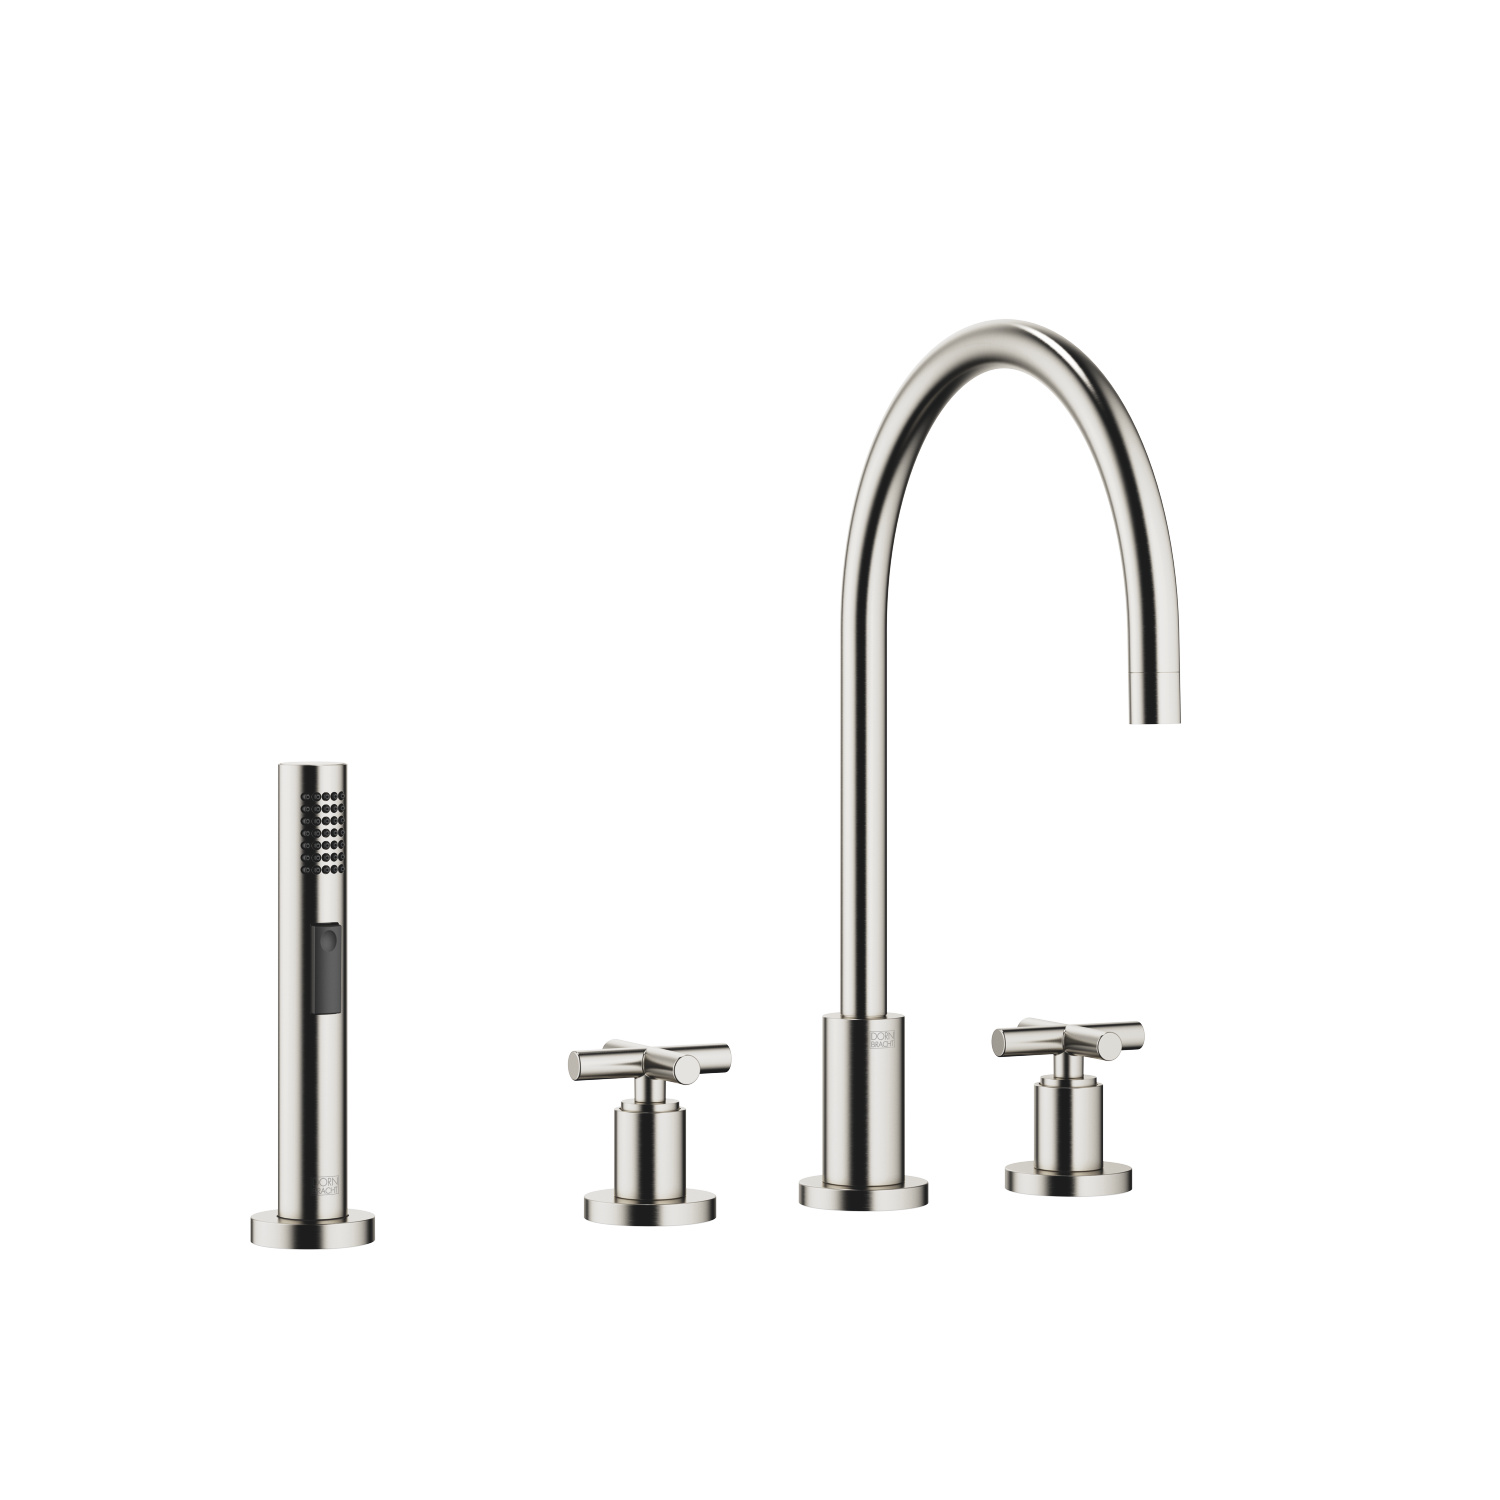 Tara Platinum Matt Kitchen Faucets Three Hole Mixer With Rinsing